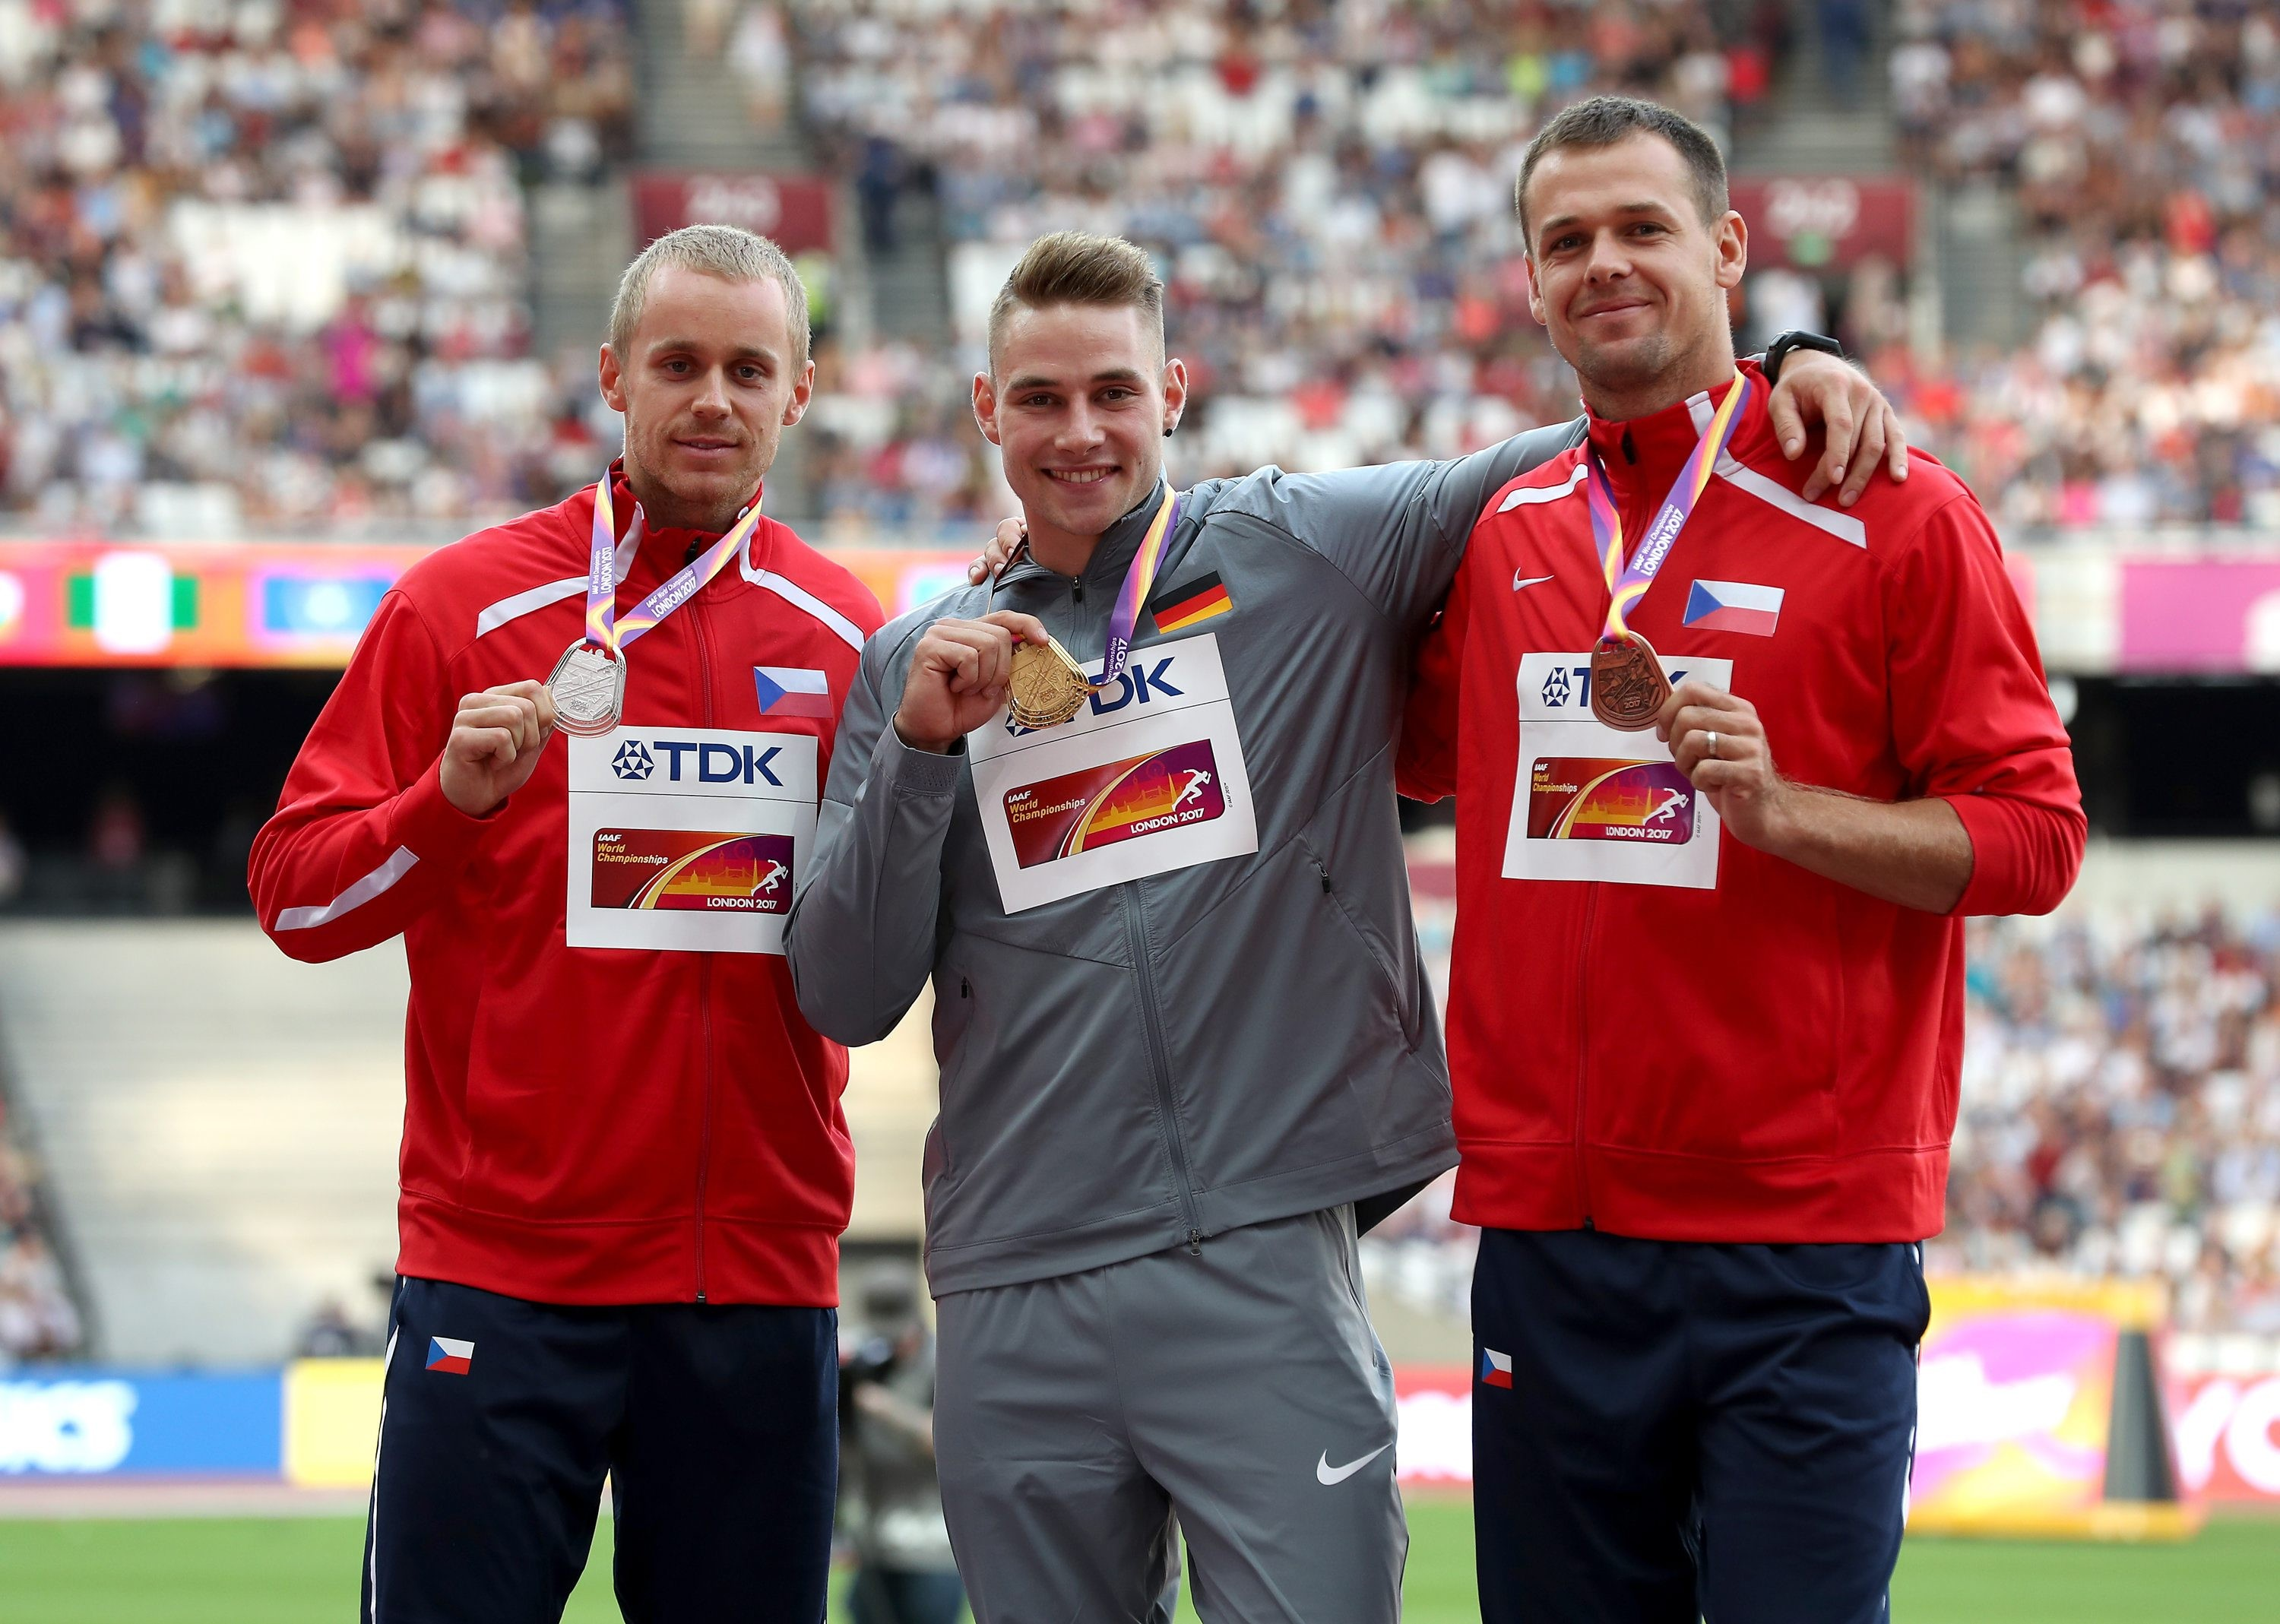 Czech Republic's Jakub Vadlejch (silver), Germany's Johannes Vetter (gold) and Czech Republic's Petr Frydrych (bronze) celebrate with their medals for the Men's Javelin Throw during day ten of the 2017 IAAF World Championships at the London Stadium. PRESS ASSOCIATION Photo. Picture date: Sunday August 13, 2017. See PA story ATHLETICS World. Photo credit should read: Martin Rickett/PA Wire. RESTRICTIONS: RESTRICTIONS: Editorial use only. No transmission of sound or moving images and no video simulation. Foto: Martin Rickett/PA Wire/dpa (Foto: dpa)